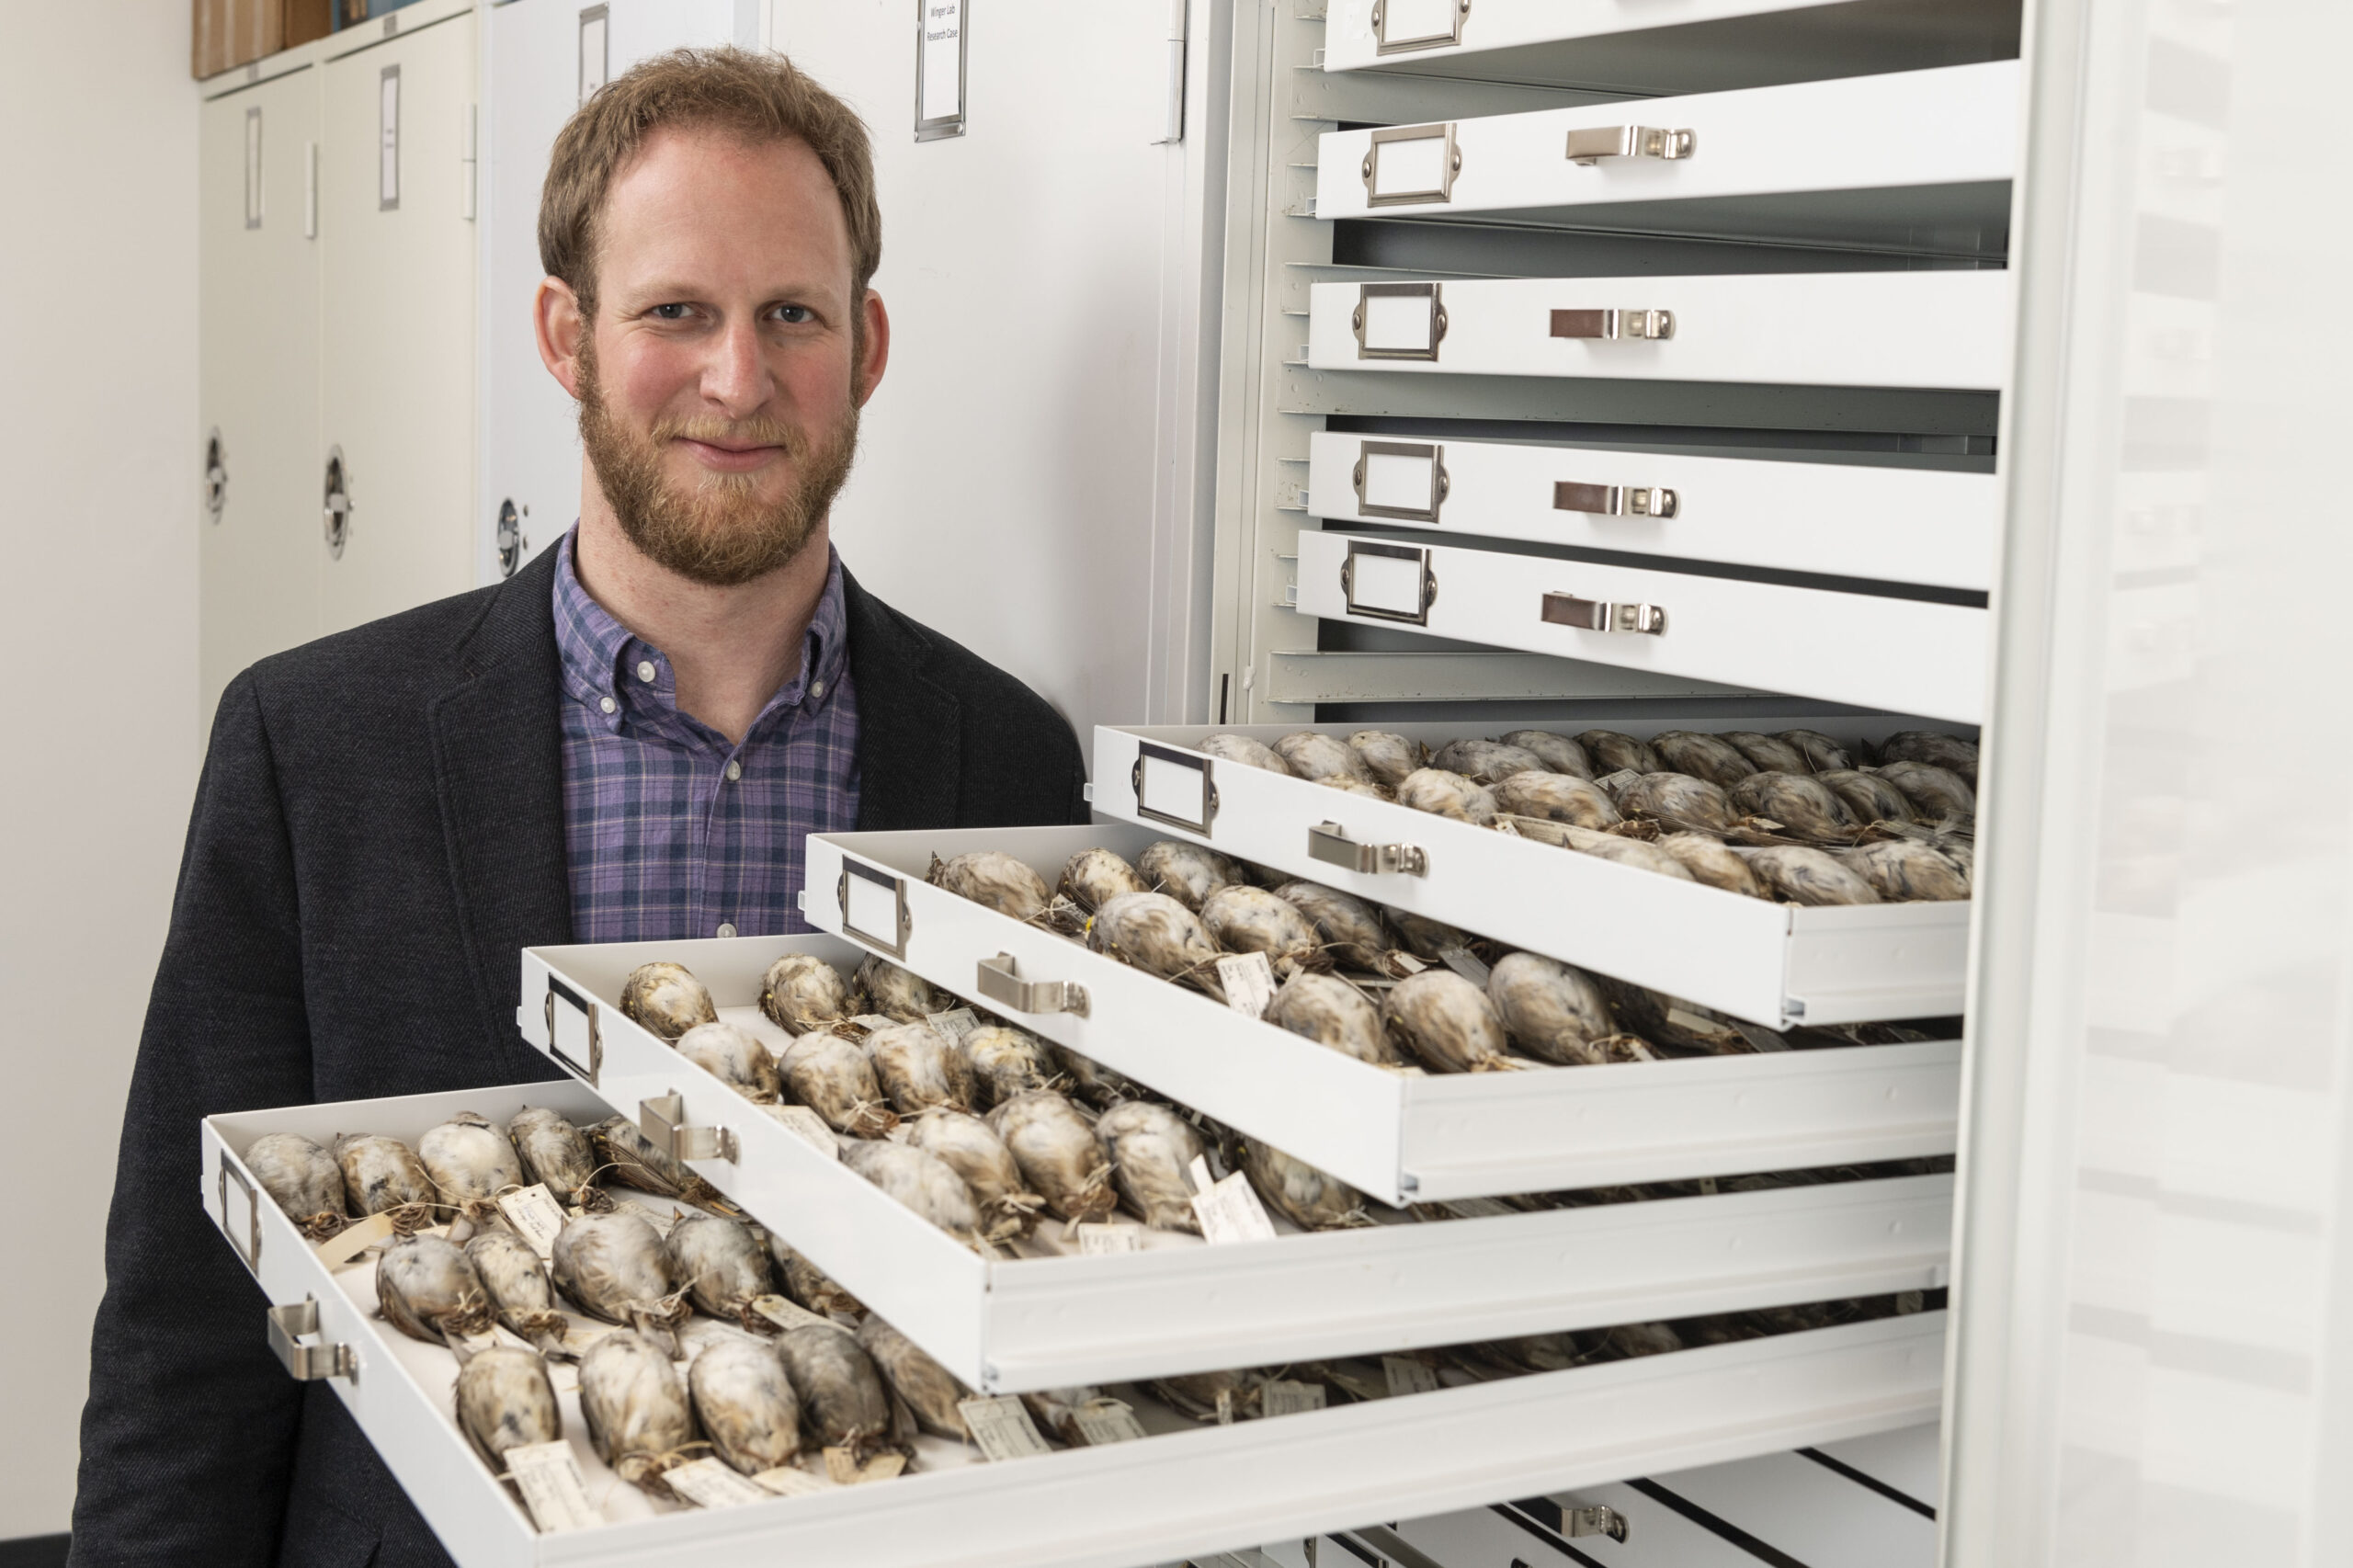 University of Michigan evolutionary biologist and ornithologist Benjamin Winger with some of the migratory songbirds from the Field Museum's collections, gathered after crashing into windows in Chicago. Winger is a senior author of the new Journal of Animal Ecology paper. Image credit: Roger Hart, Michigan Photography